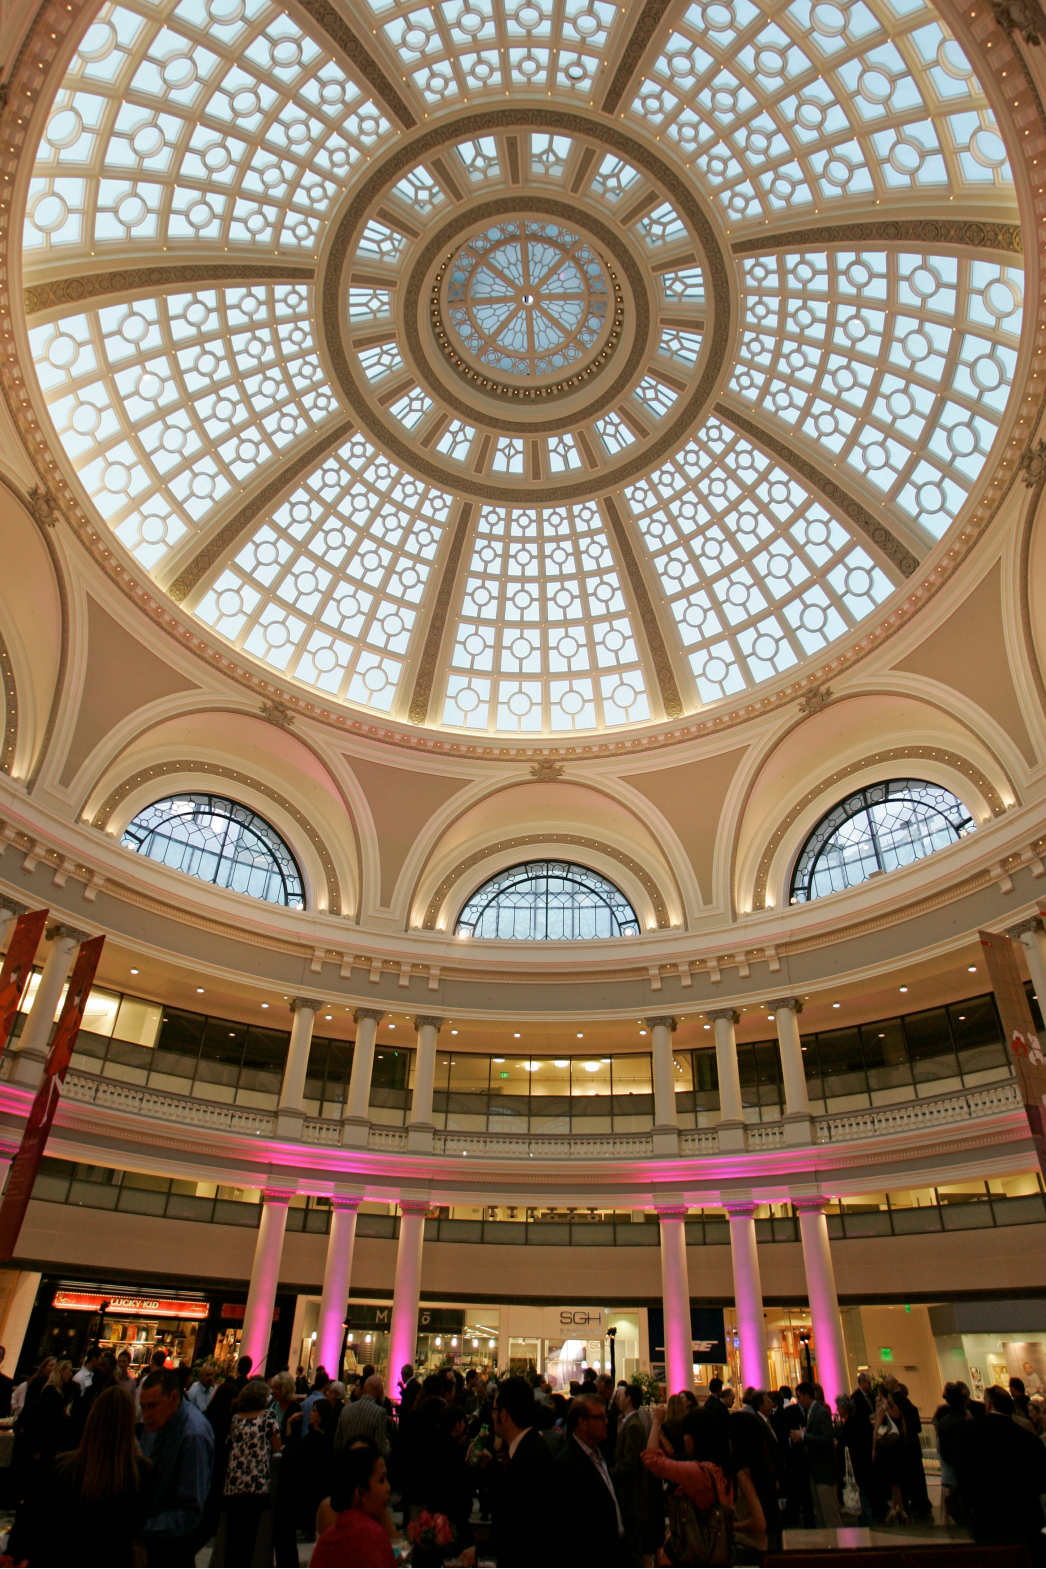 The mall REIT said foot traffic is up again at its shopping centers, and most are open, although some still have restrictions in place.